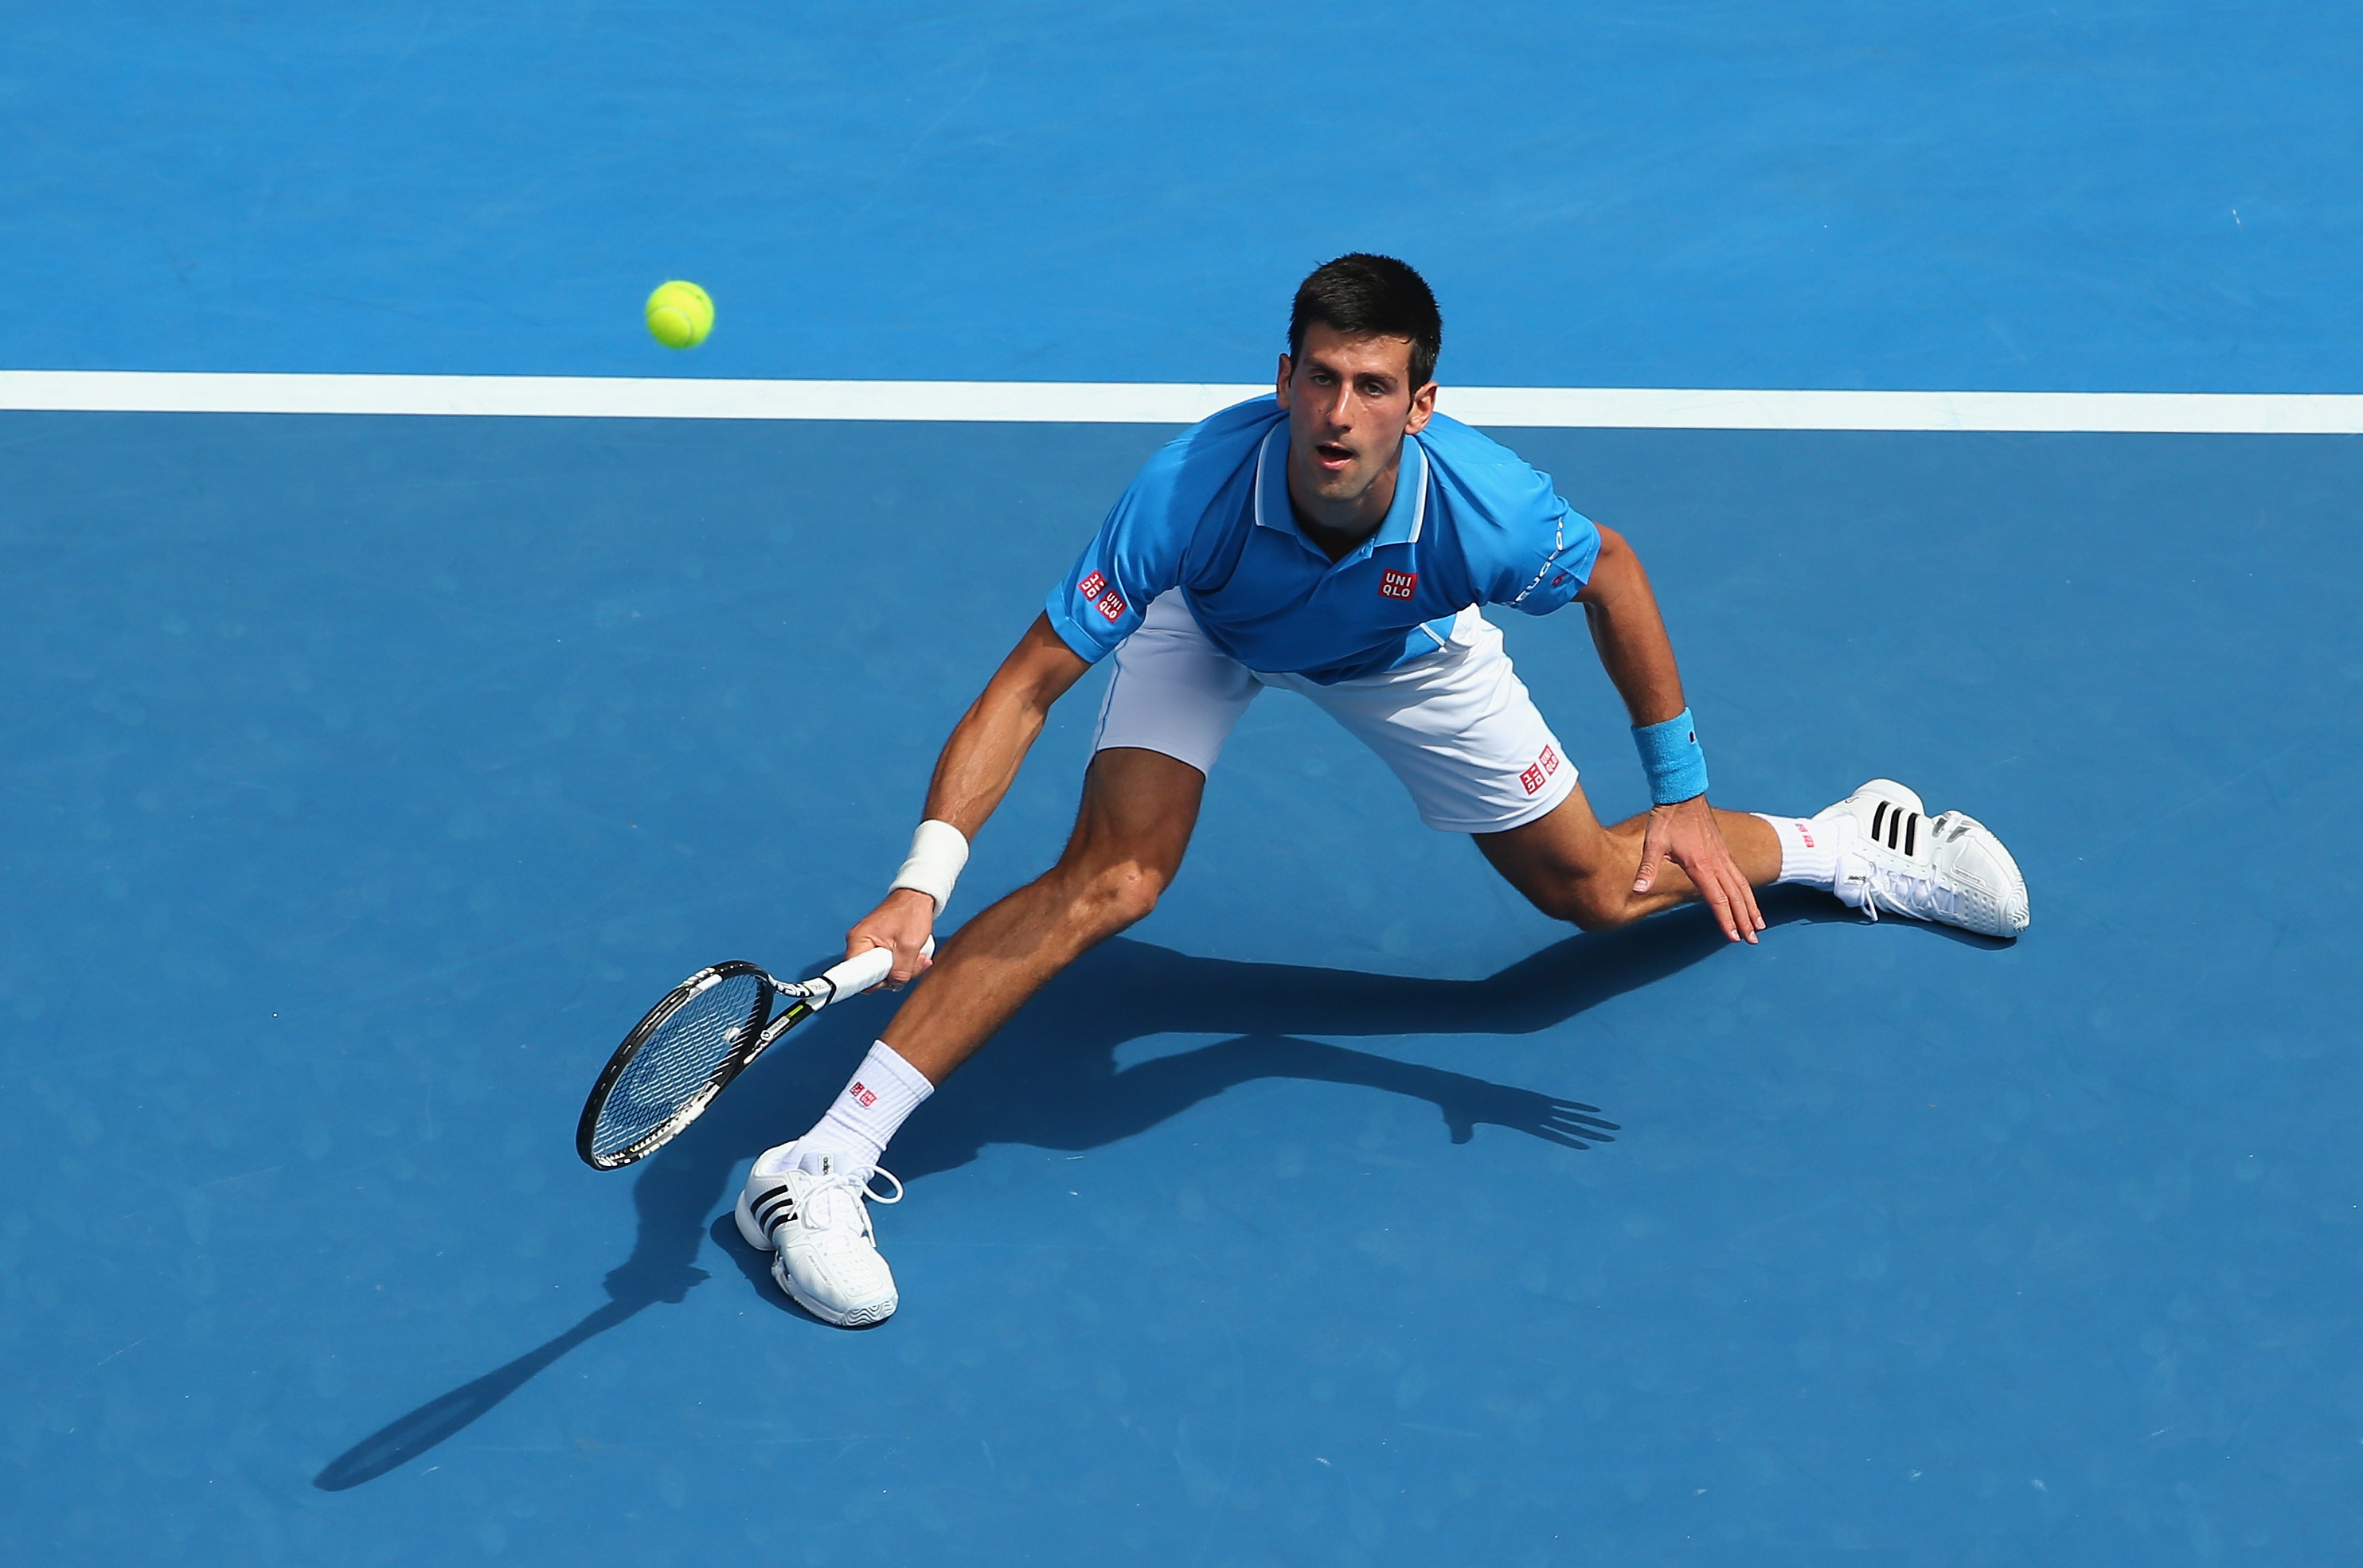 Djokovic has been alternating between a white shirt and a blue shirt. A boring and disappointing offer from Uniqlo.